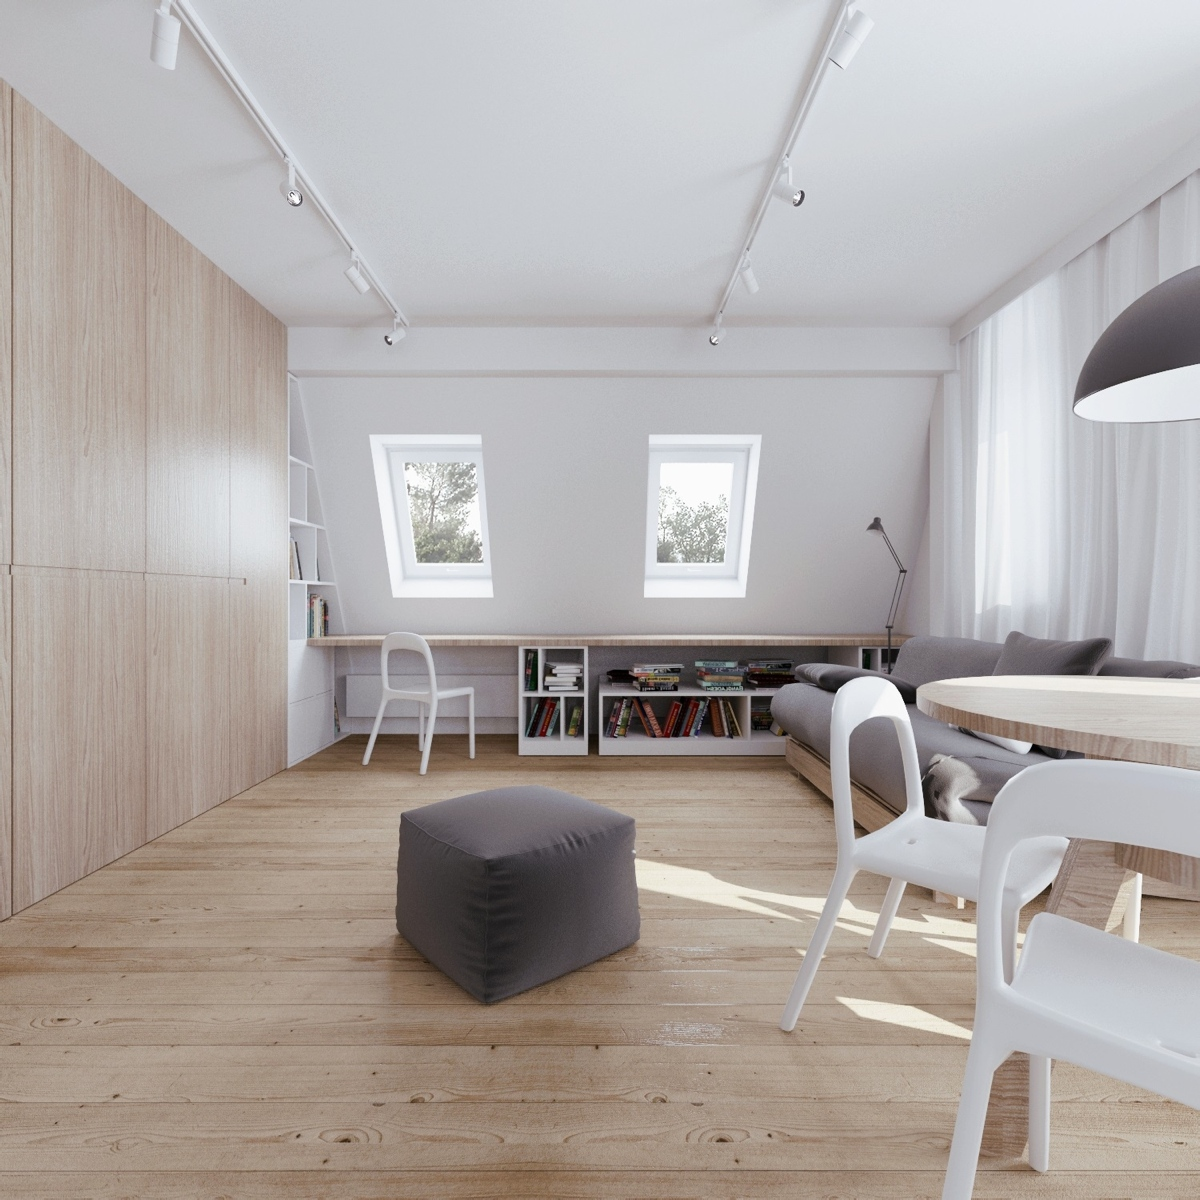 Skylight Design - Beautiful attic apartment with clever design features